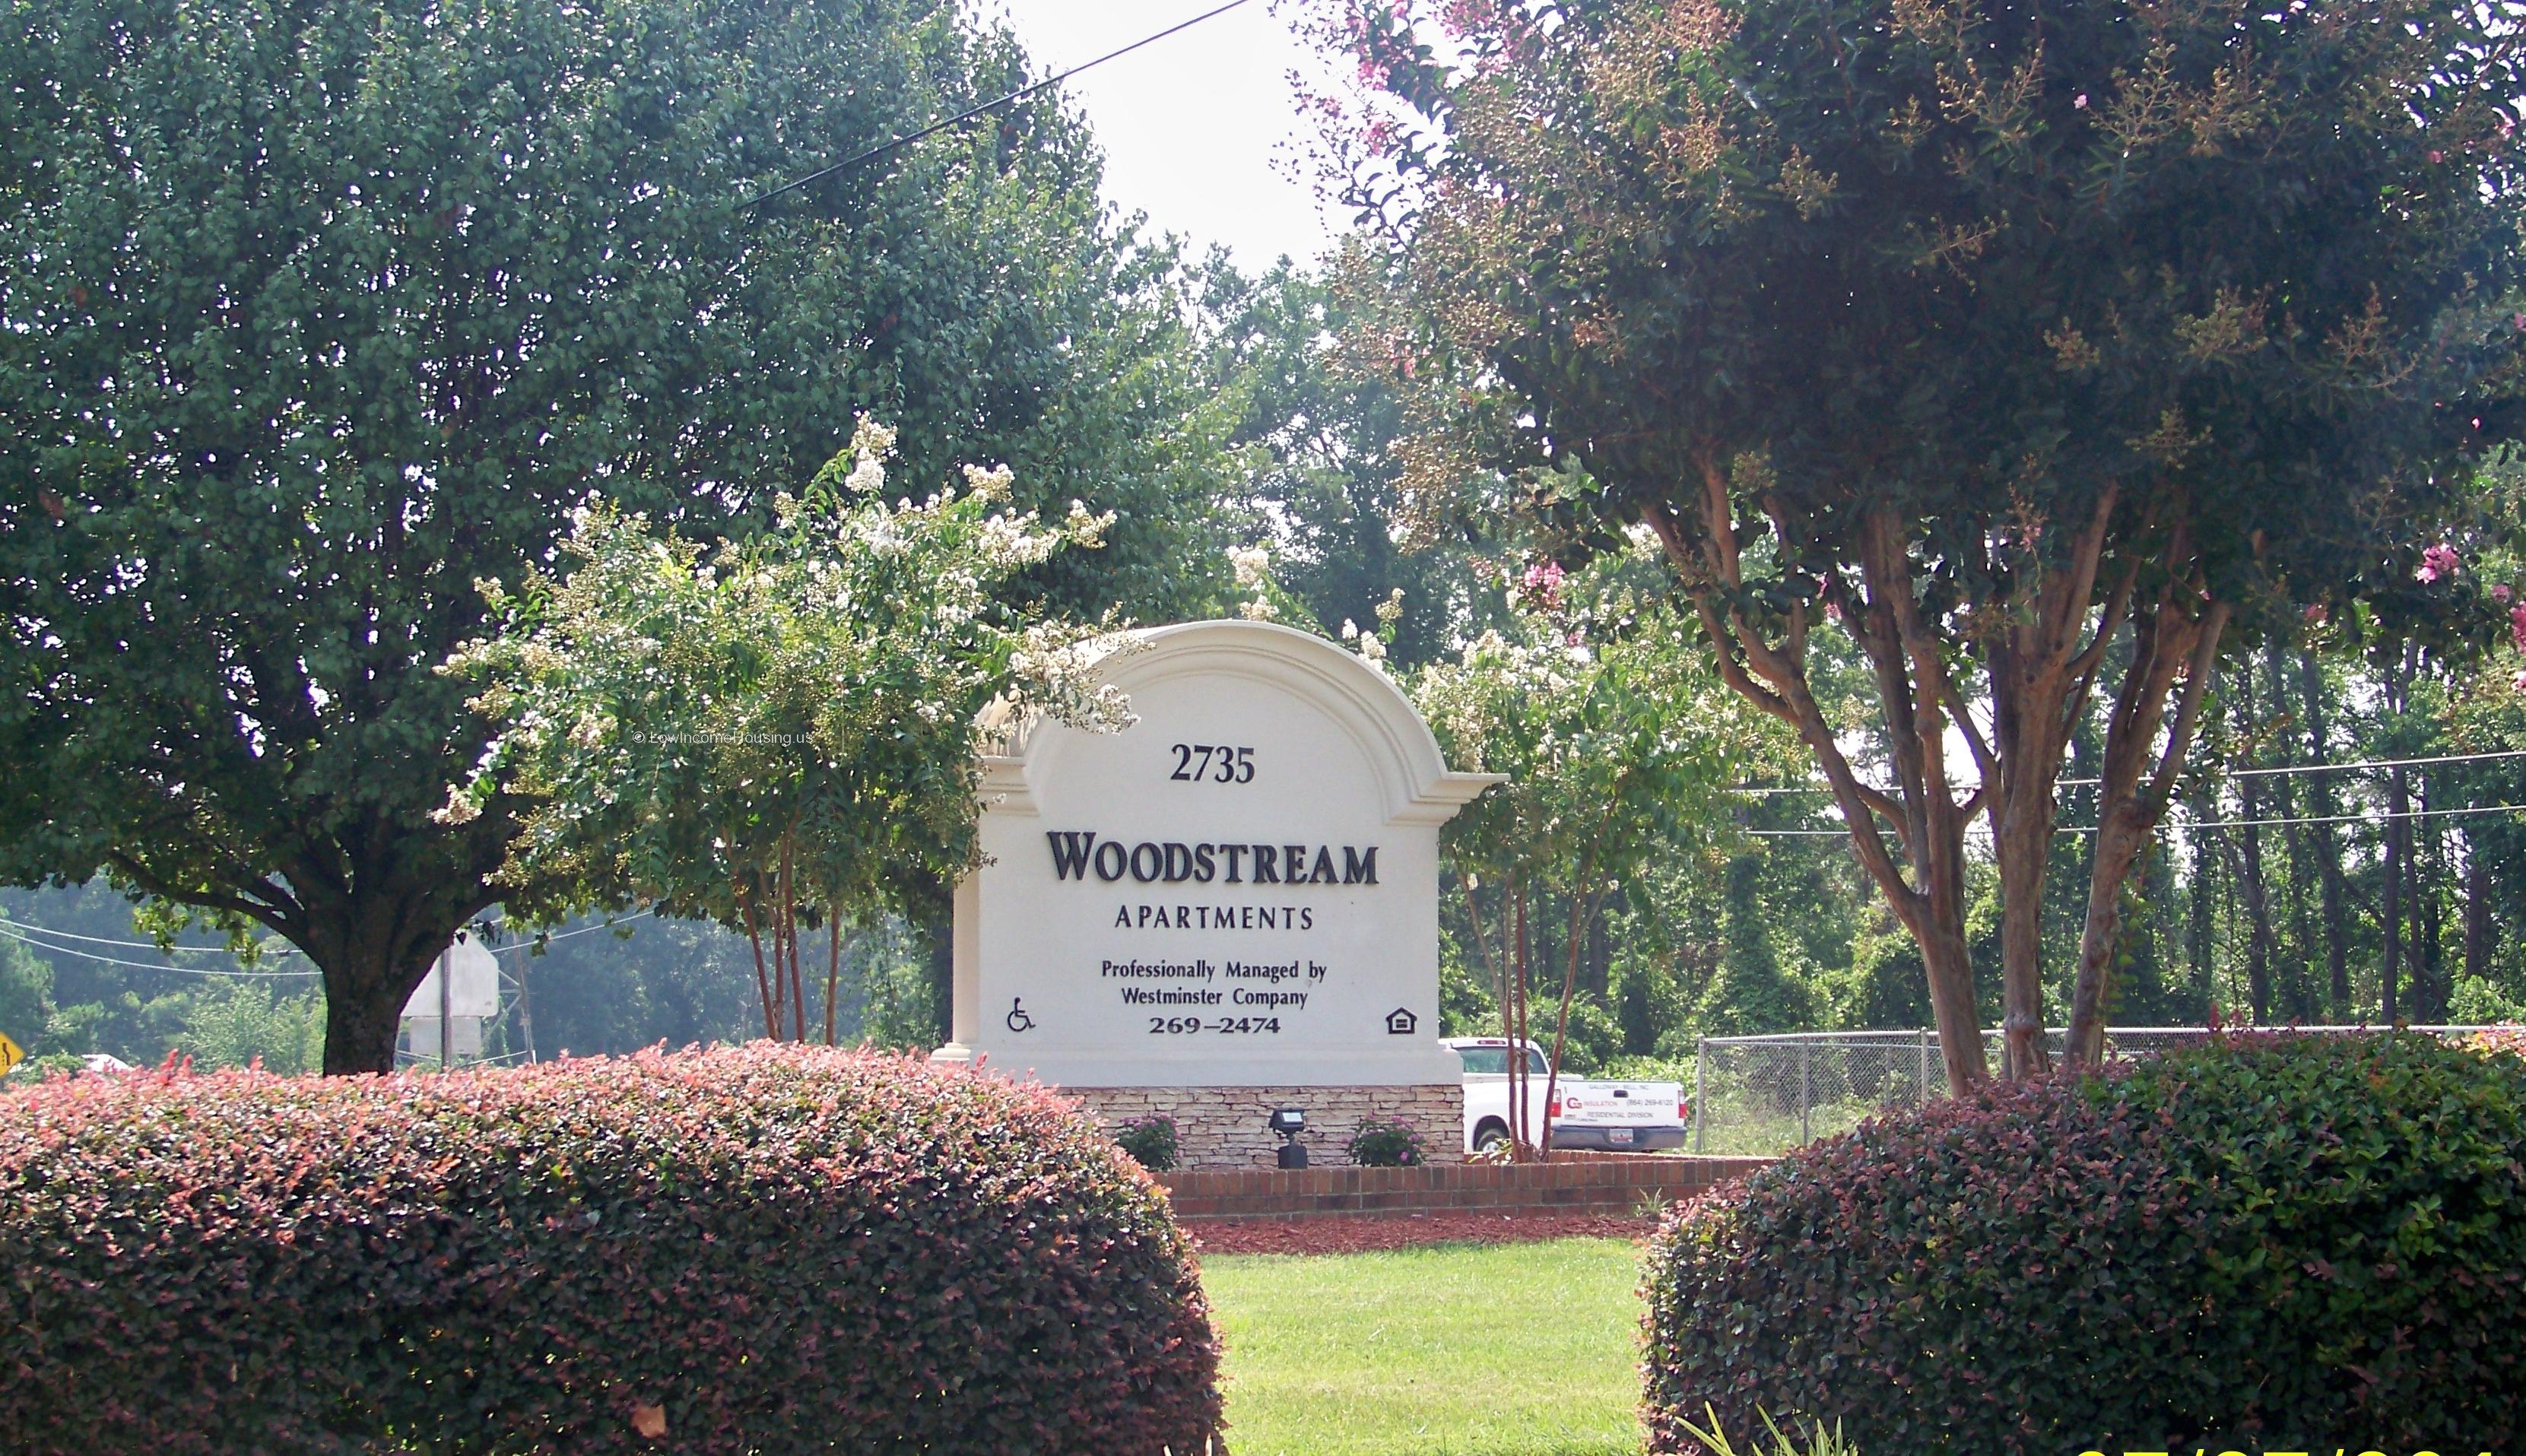 Woodstream Apartments